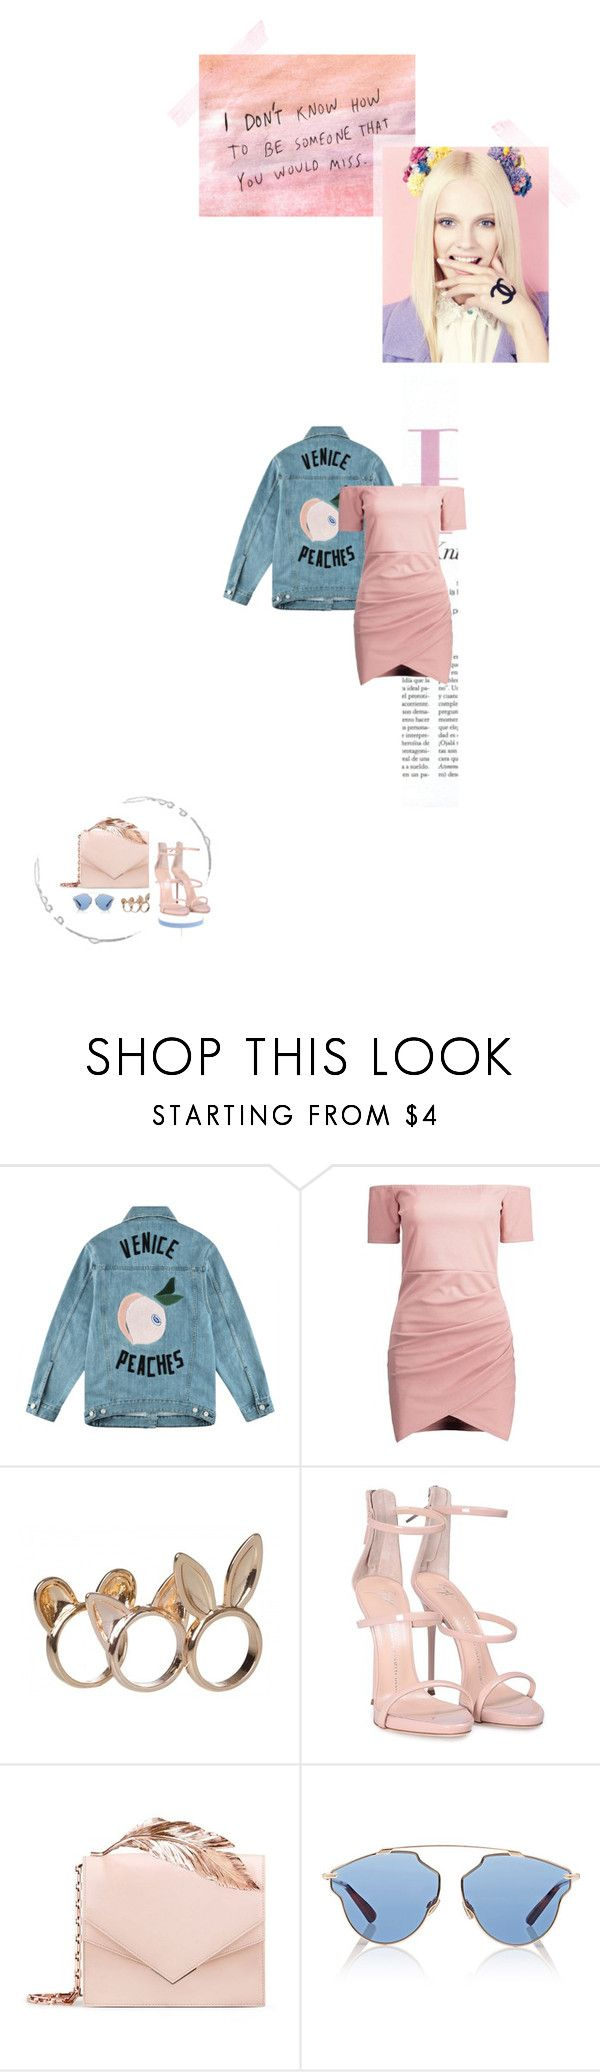 """""""I'm more than just a picture"""" by flowy ❤ liked on Polyvore featuring Être Cécile, Giuseppe Zanotti, RALPH & RUSSO, Christian Dior and Jules Smith"""